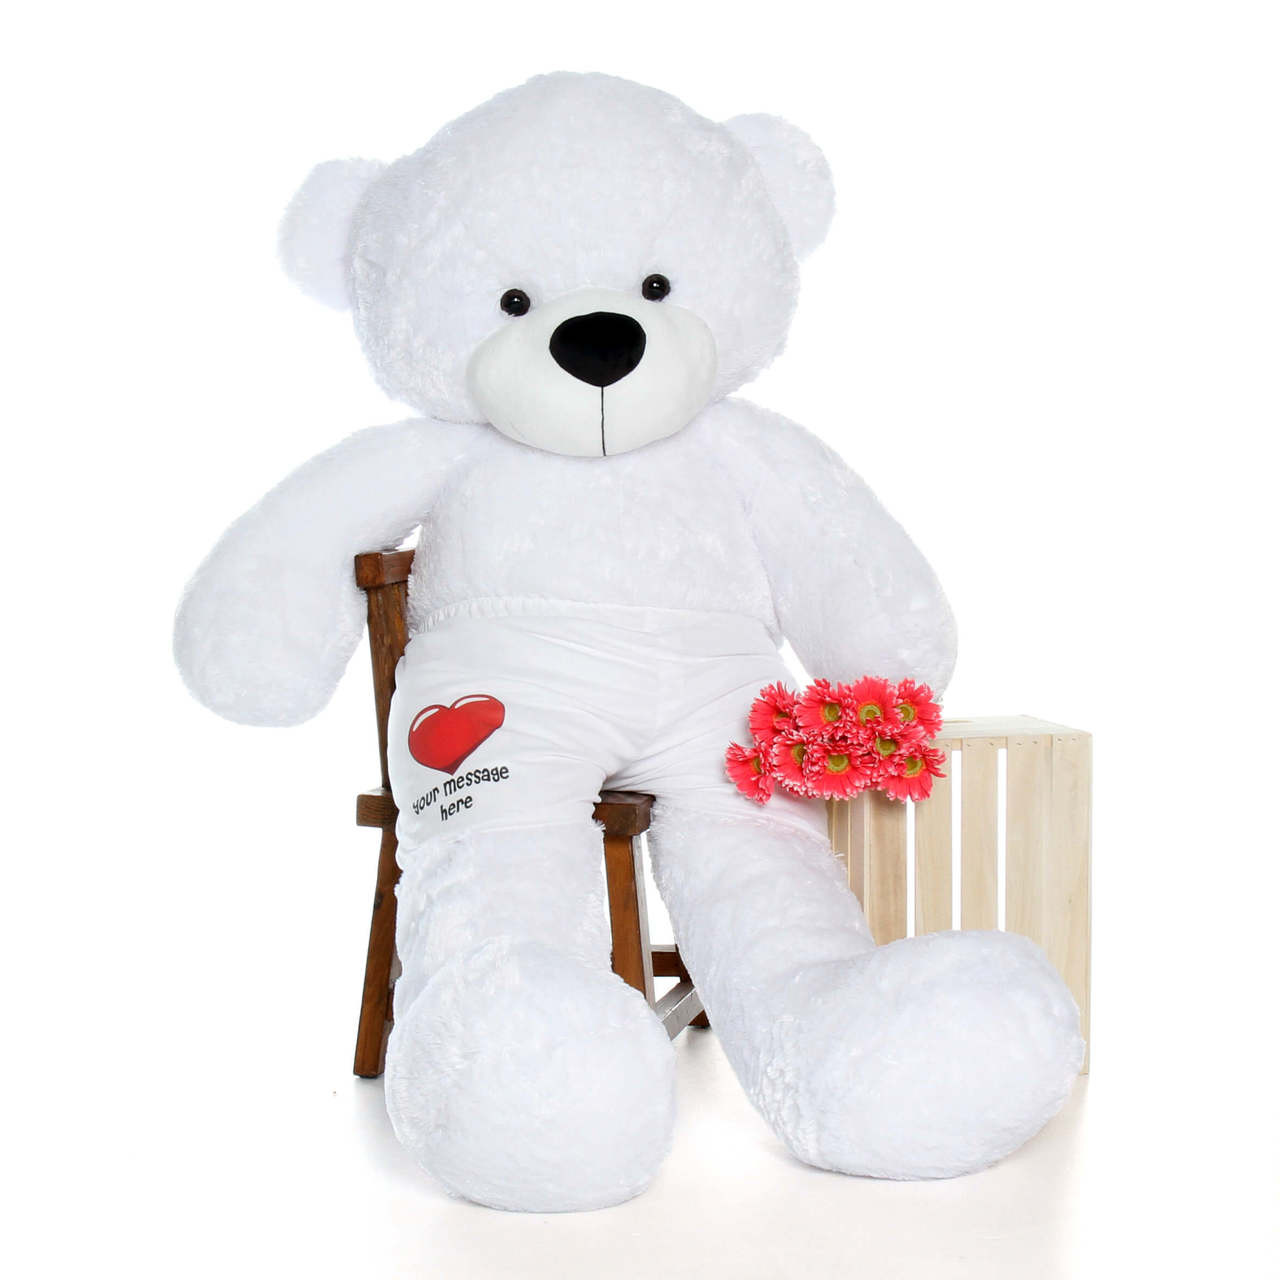 6 Foot Giant White Teddy Bear with Personalized Boxers